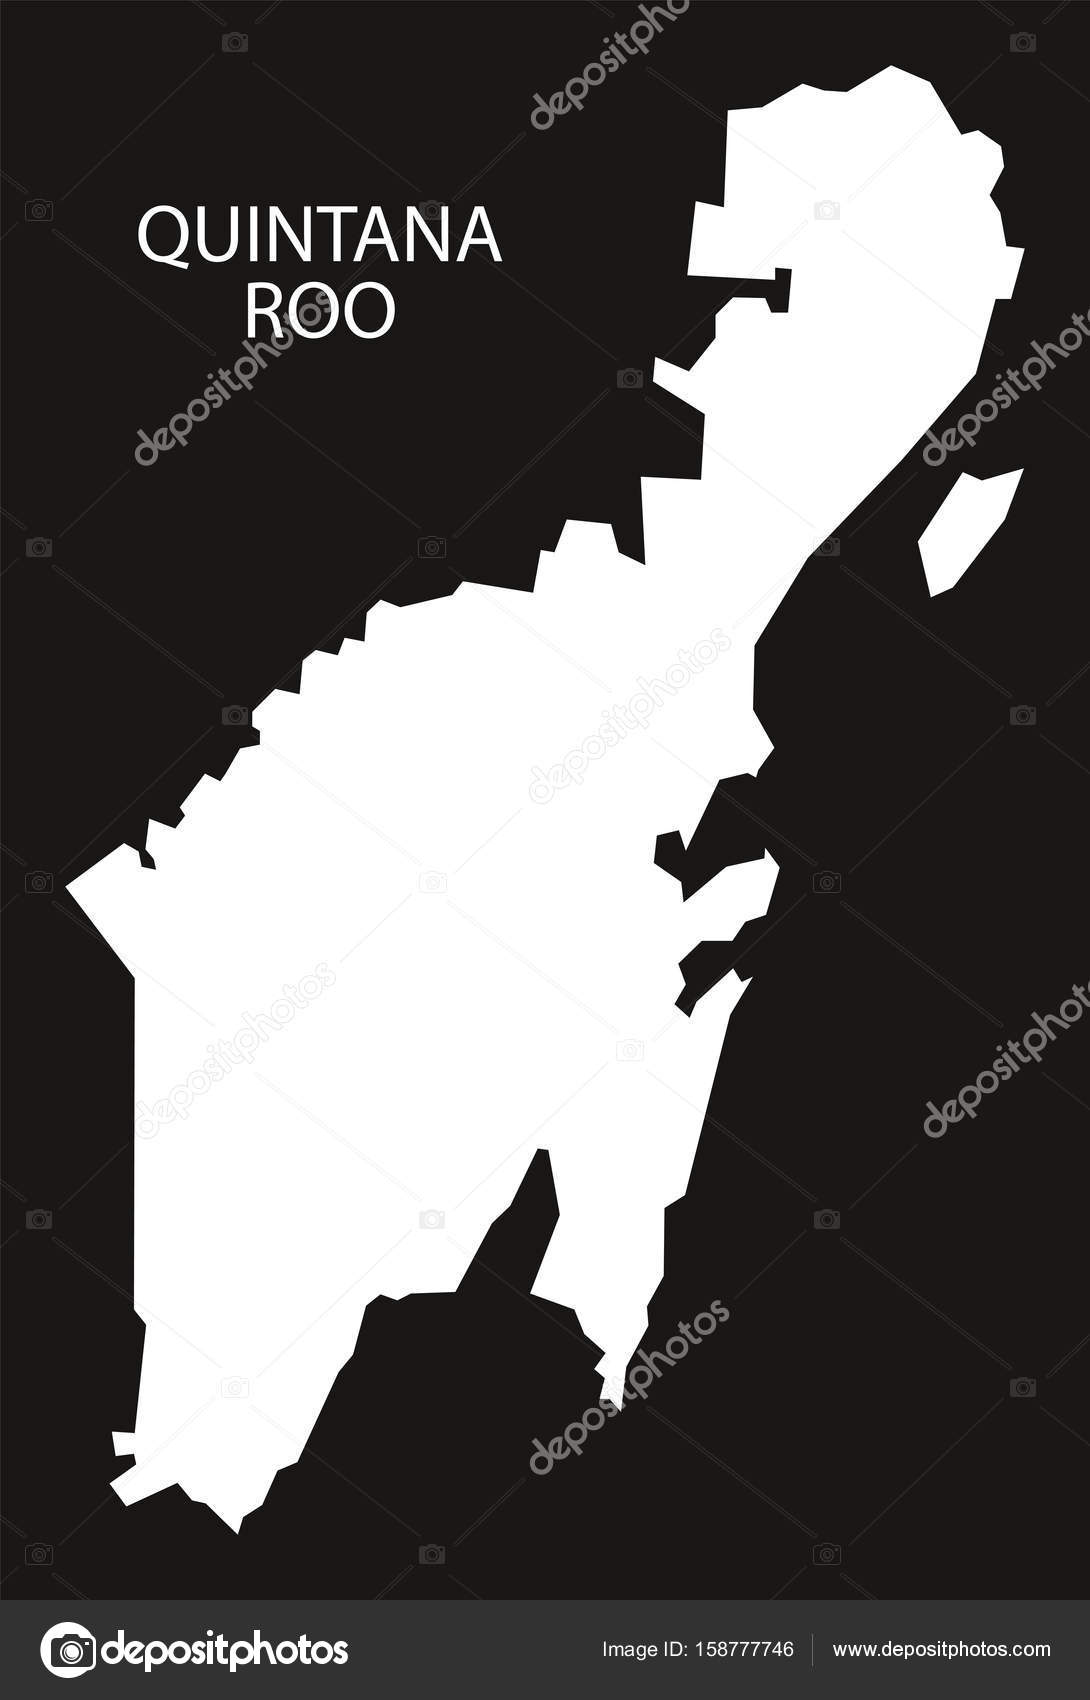 Quintana Roo Mexico Map black inverted silhouette — Stock Vector on